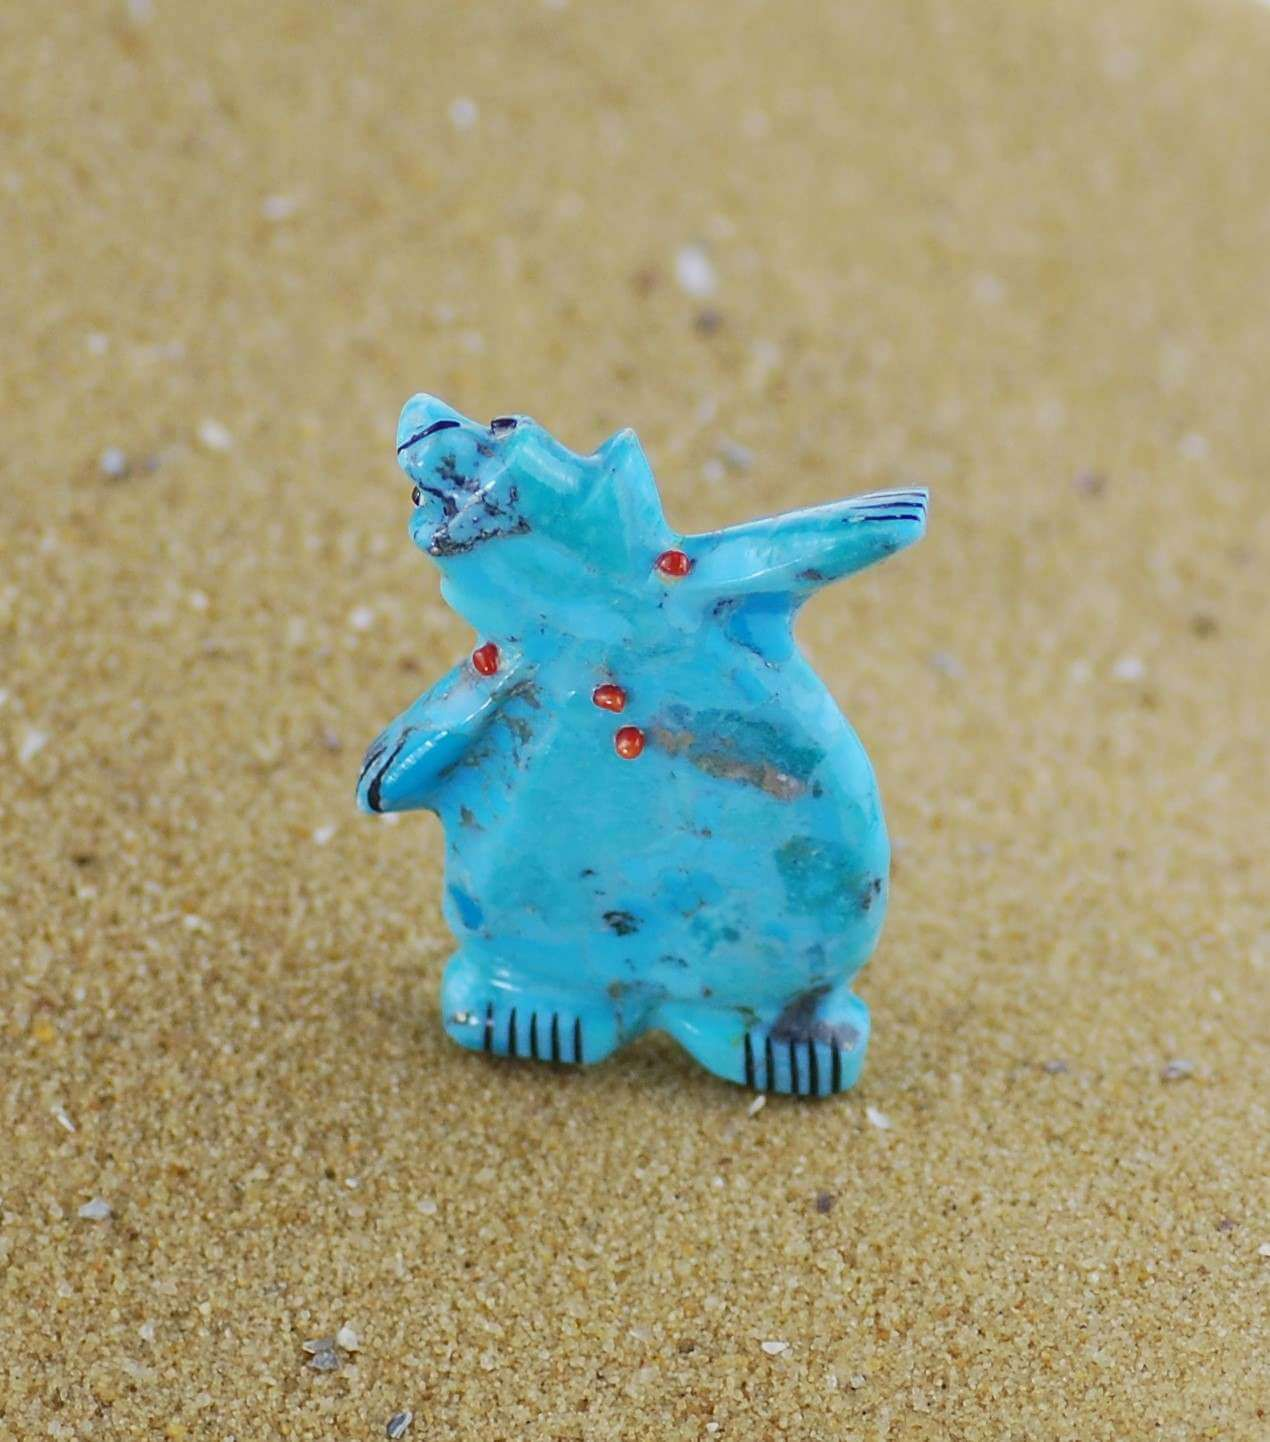 Image shows turquoise dancing fetish bear by claudia piena